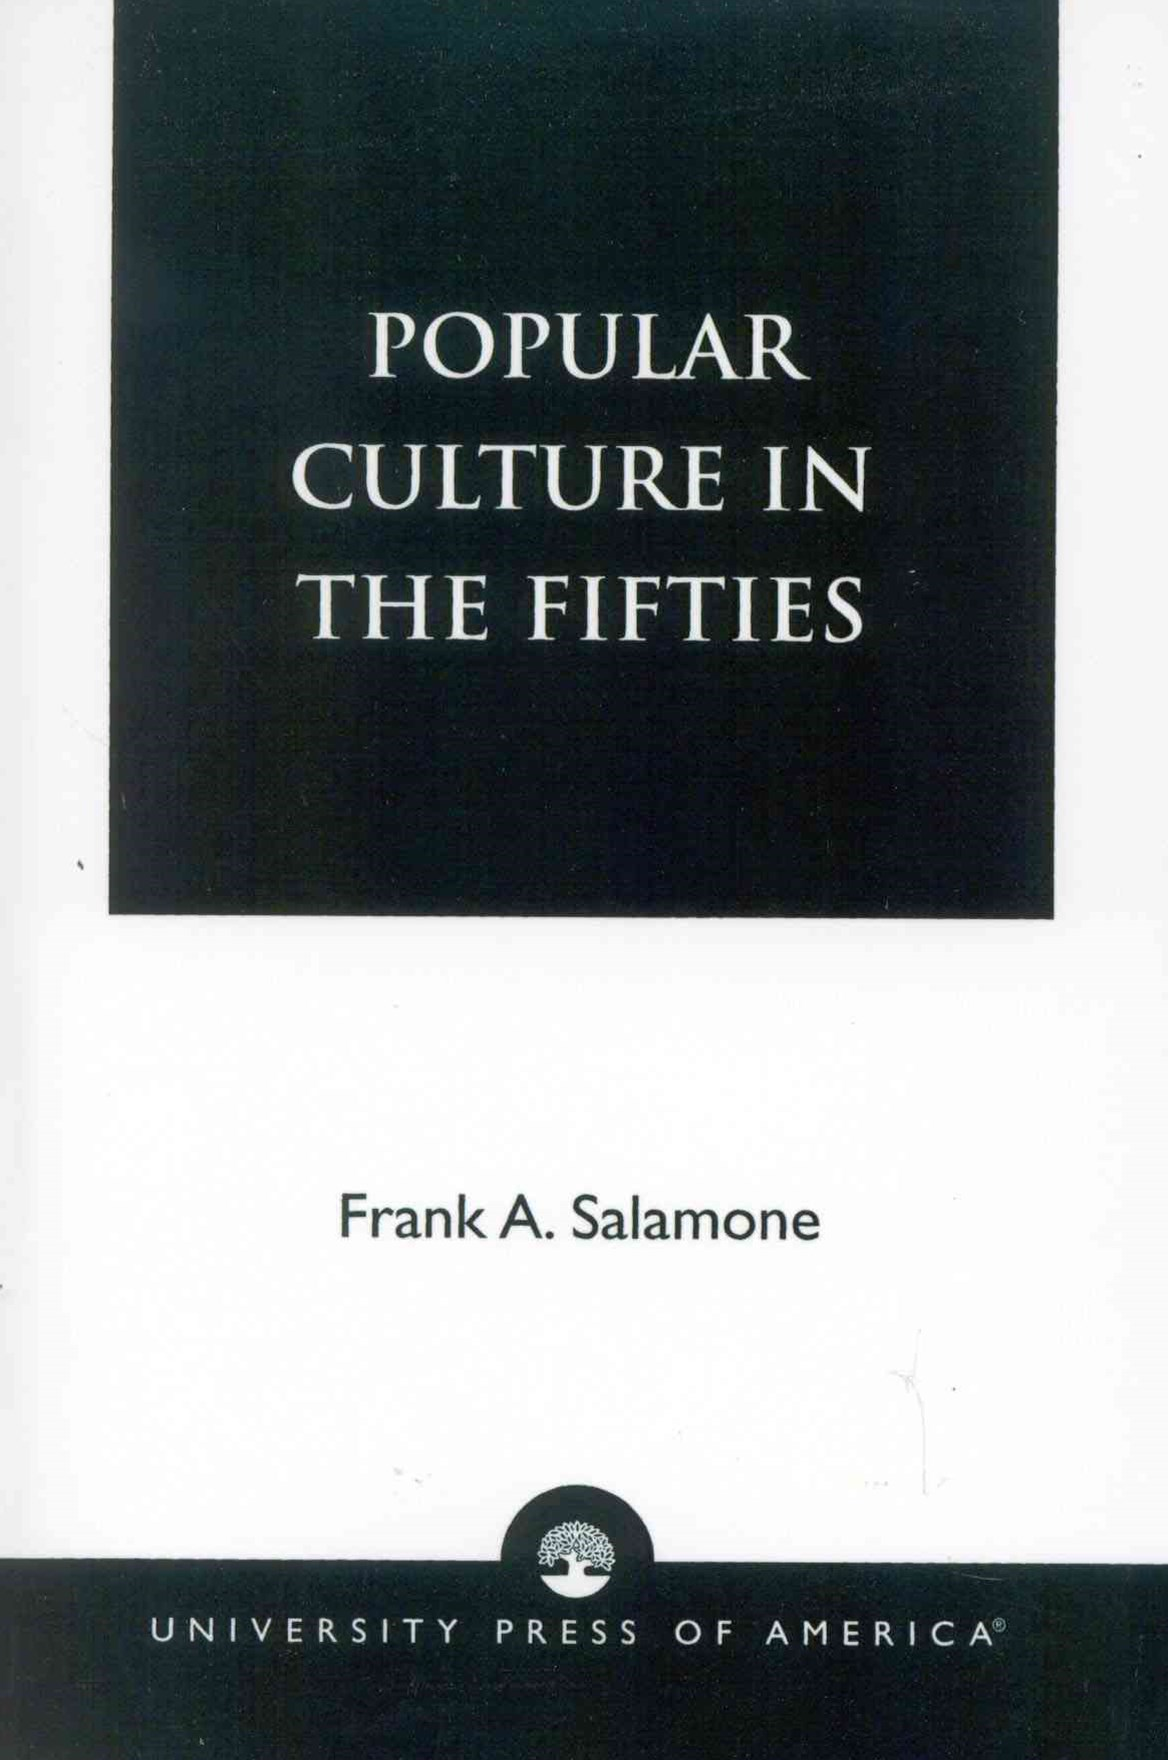 Popular Culture in the Fifties